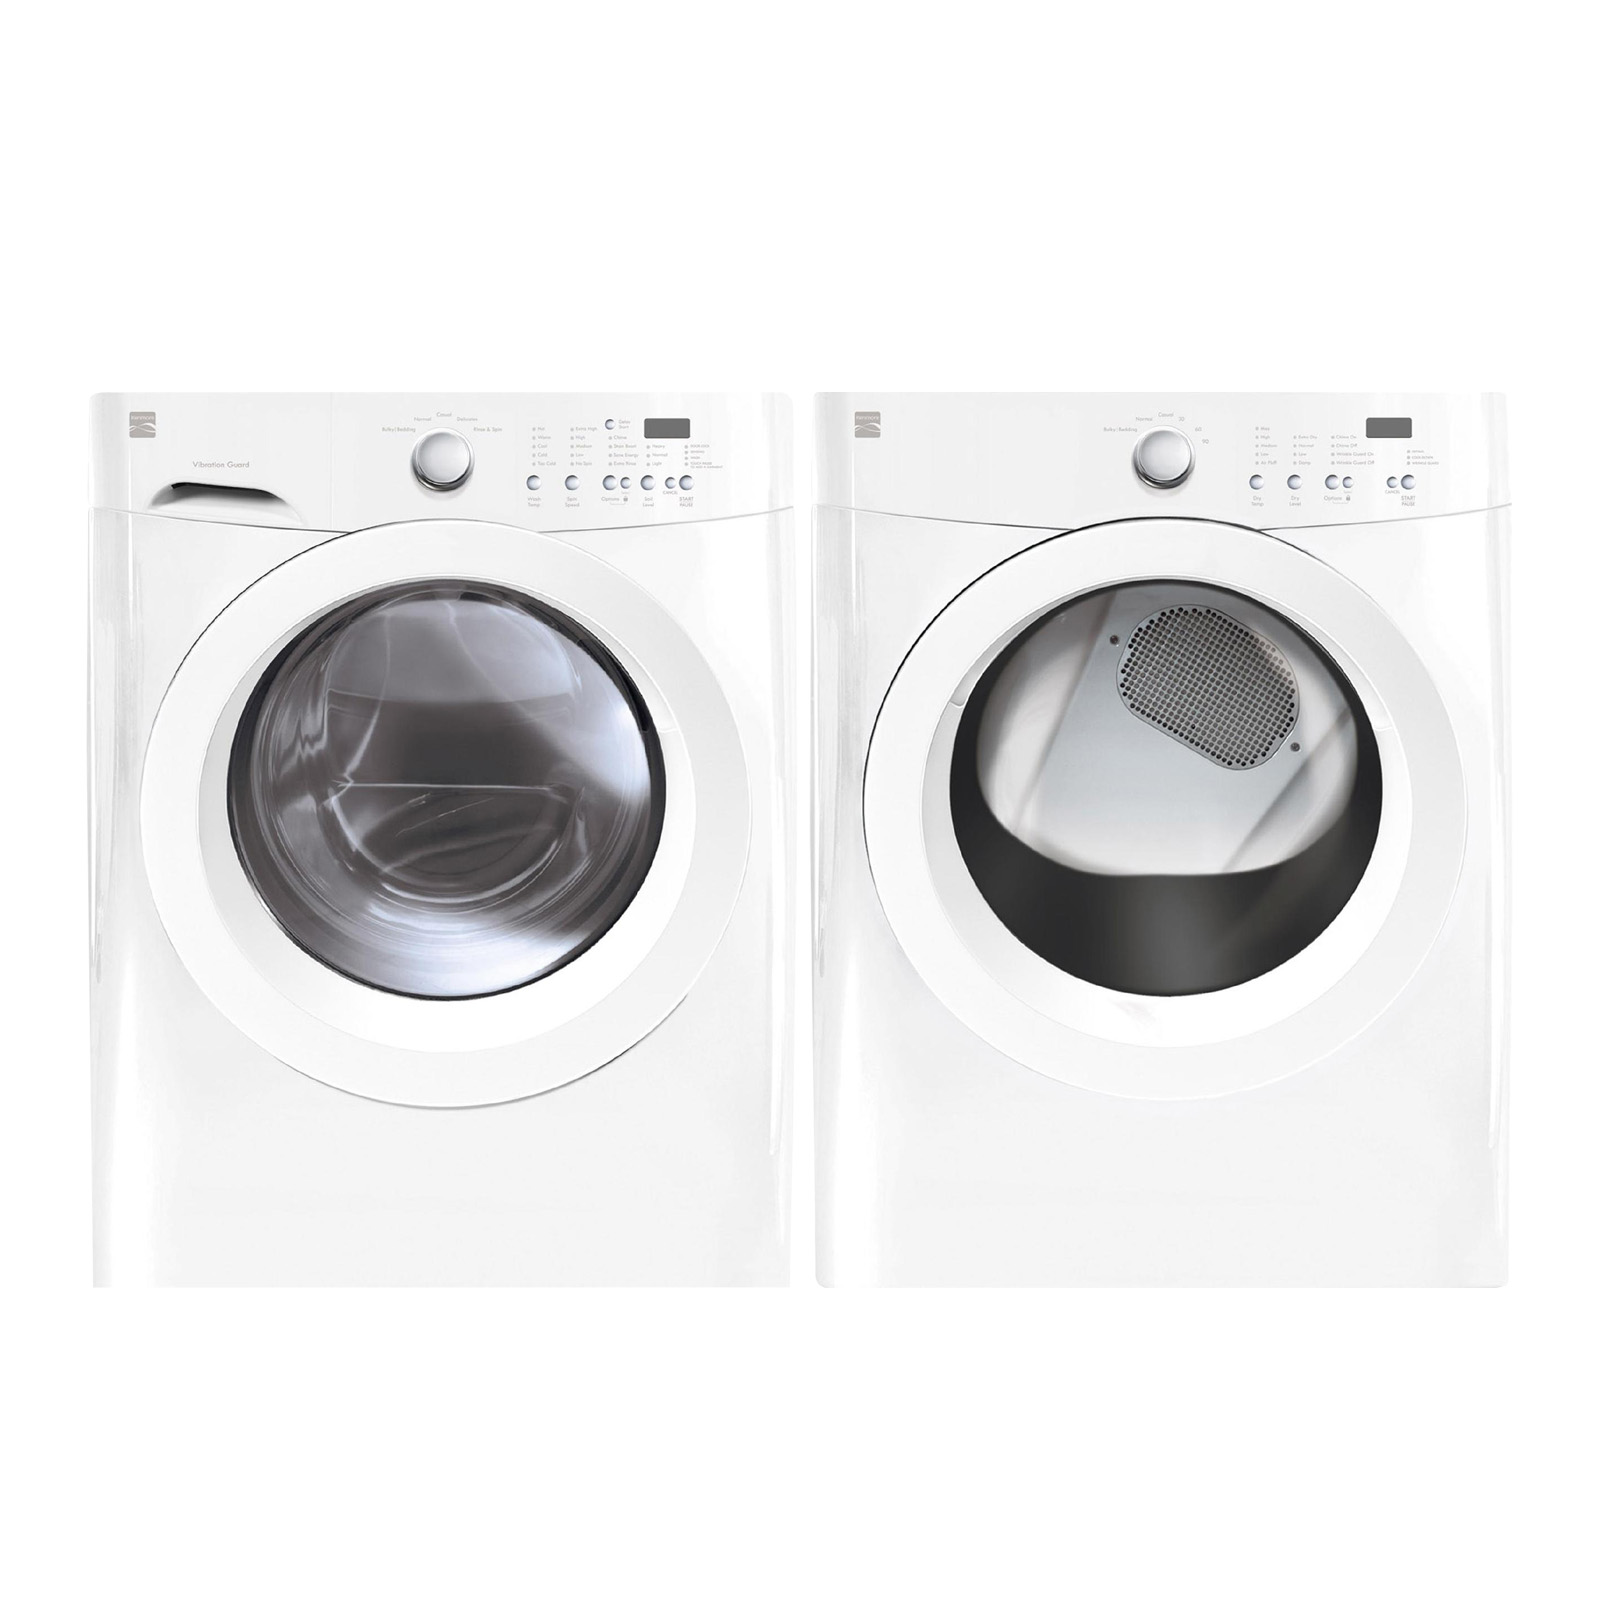 Kenmore 3.7 cu. ft. Front-Load Washer and 7.0 cu. ft. Dryer - White Bundle